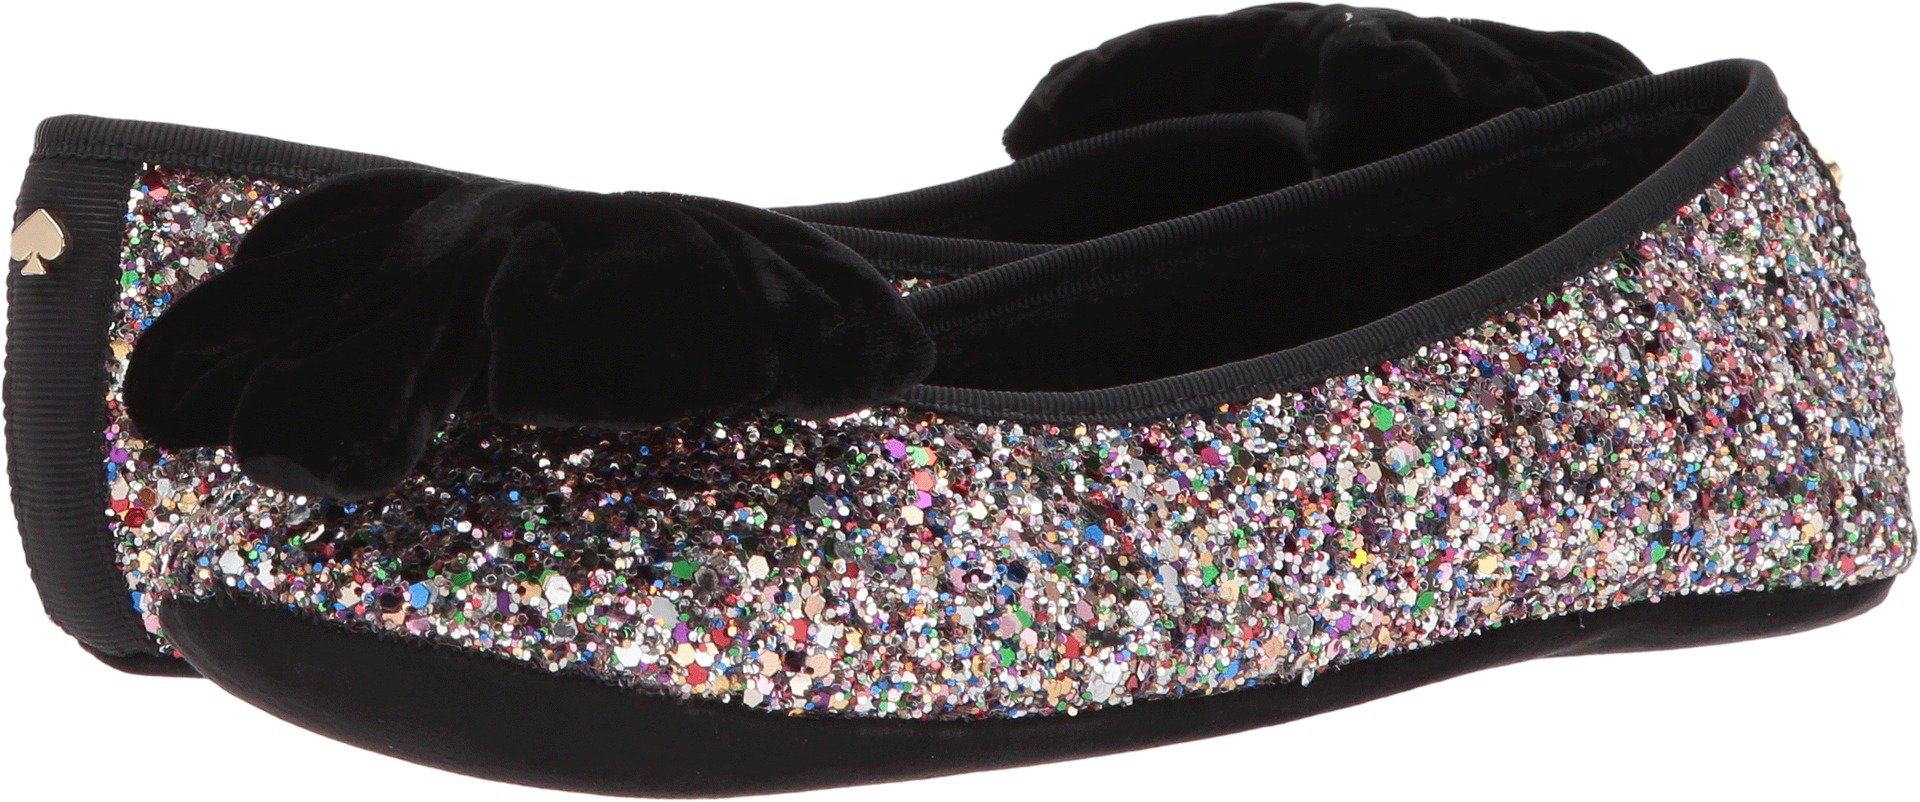 Kate Spade New York Women's Sussex Multi Plush Glitter 5 M US